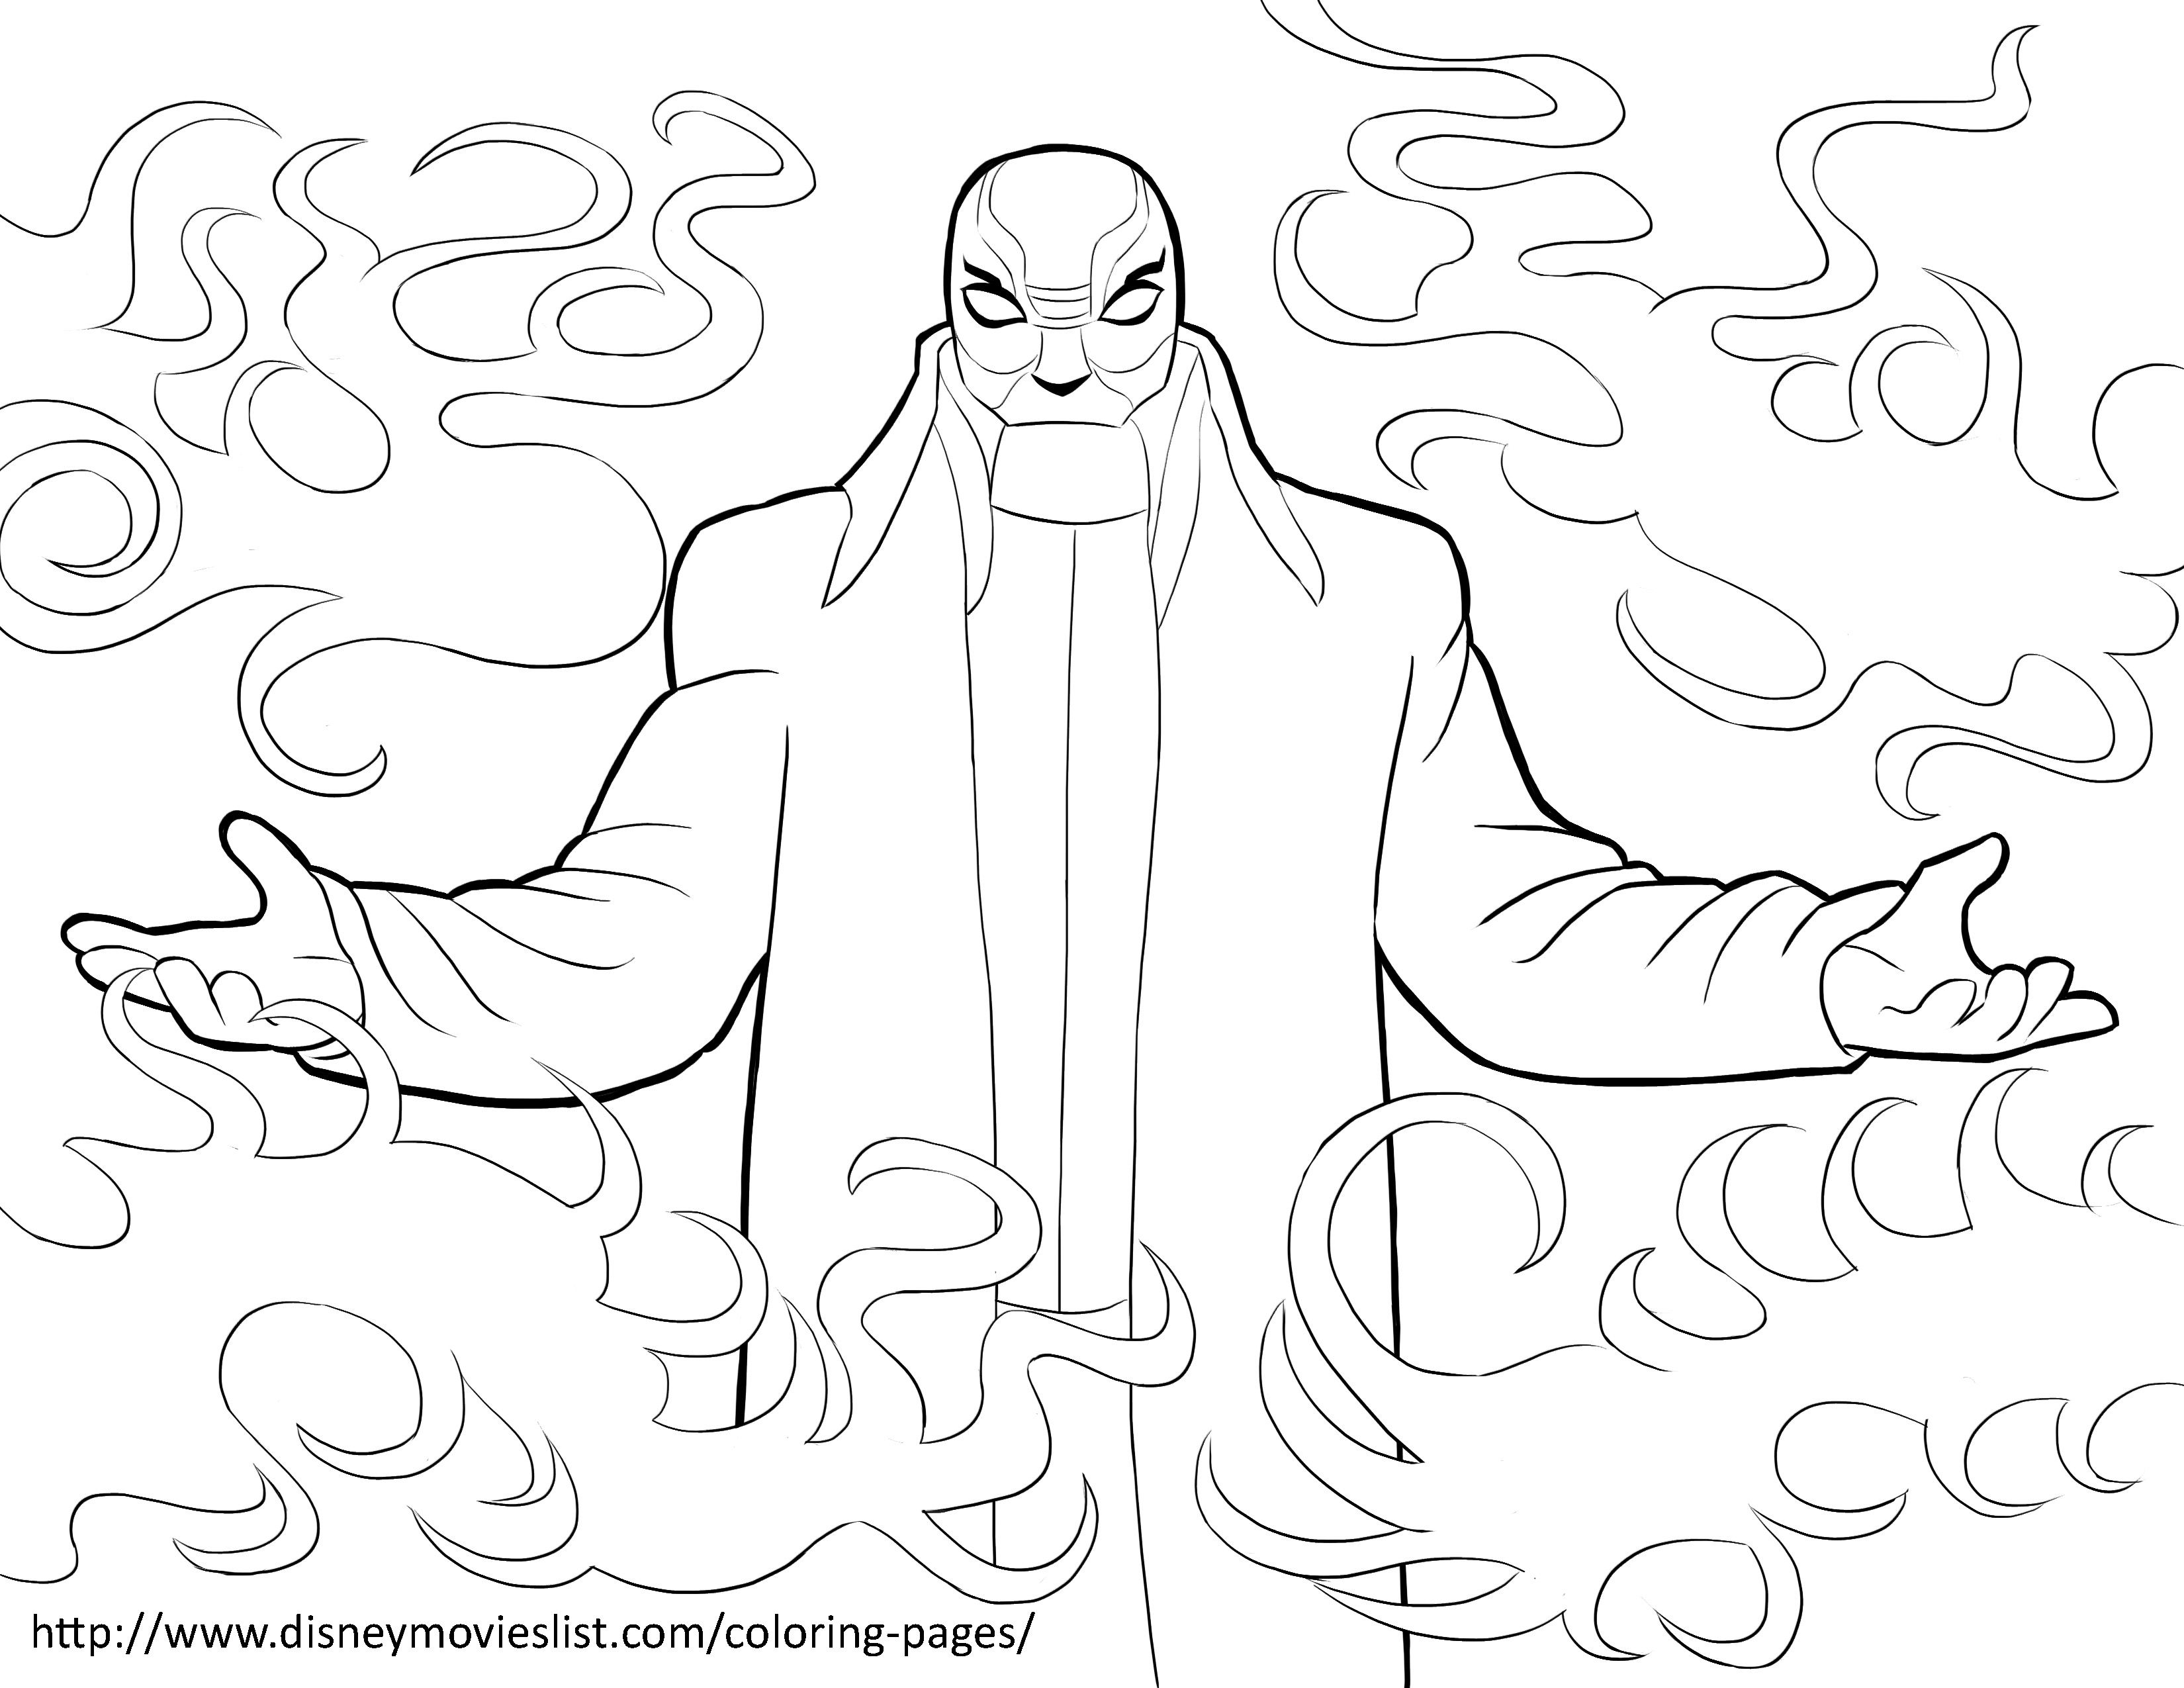 Yokai Is The Evil Mystery Bad Guy In Movie Big Hero 6 Who Behind That Mask Print Out And Have Fun With This Free Coloring Page